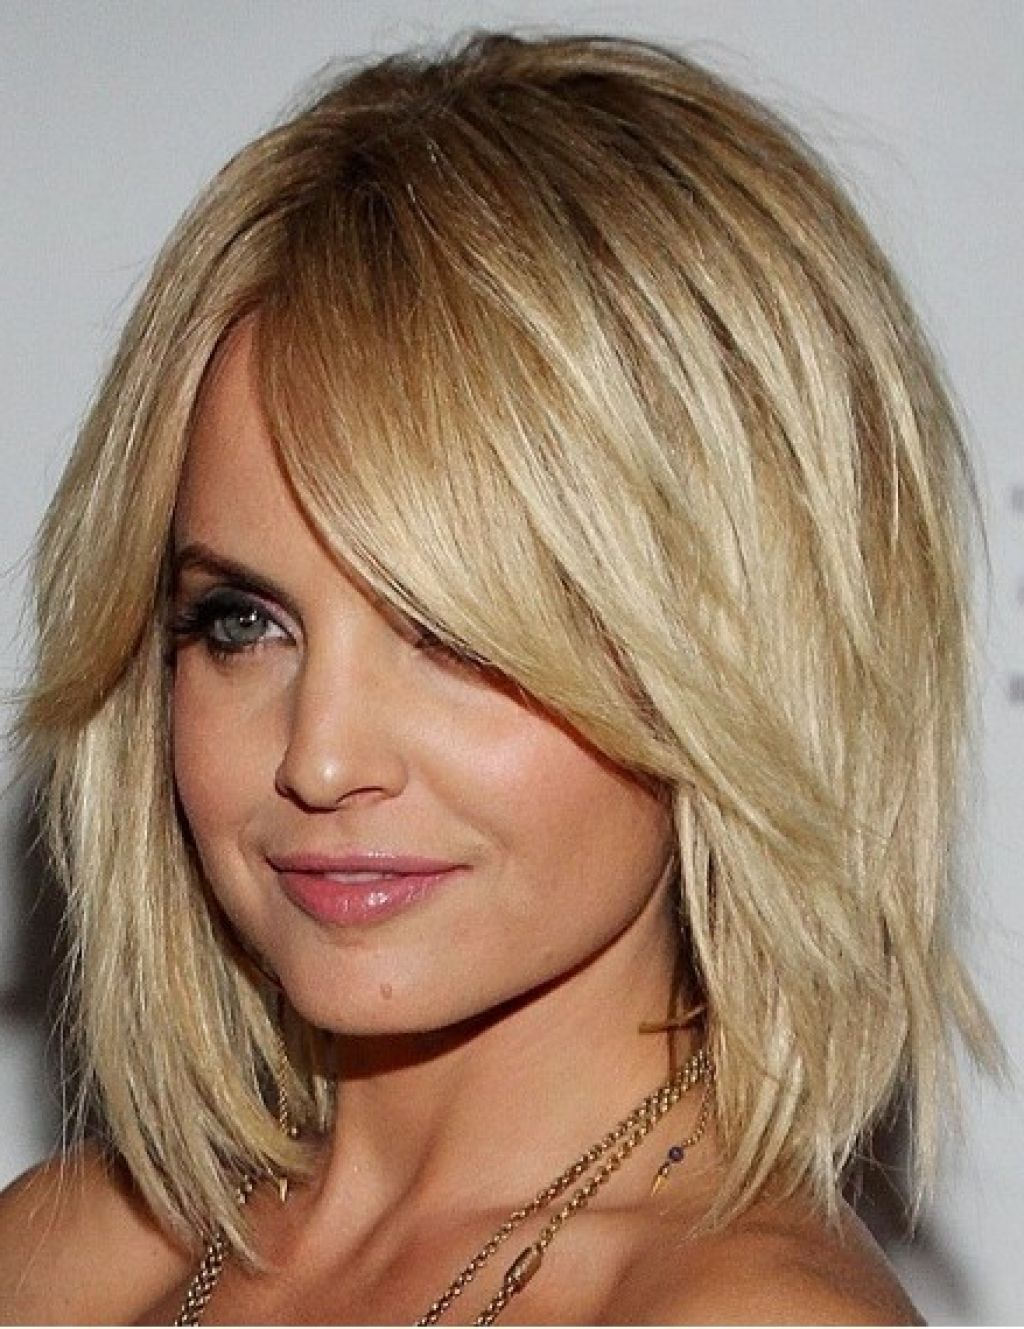 medium long hair for 2016 | trendy hairstyles 2015 / 2016